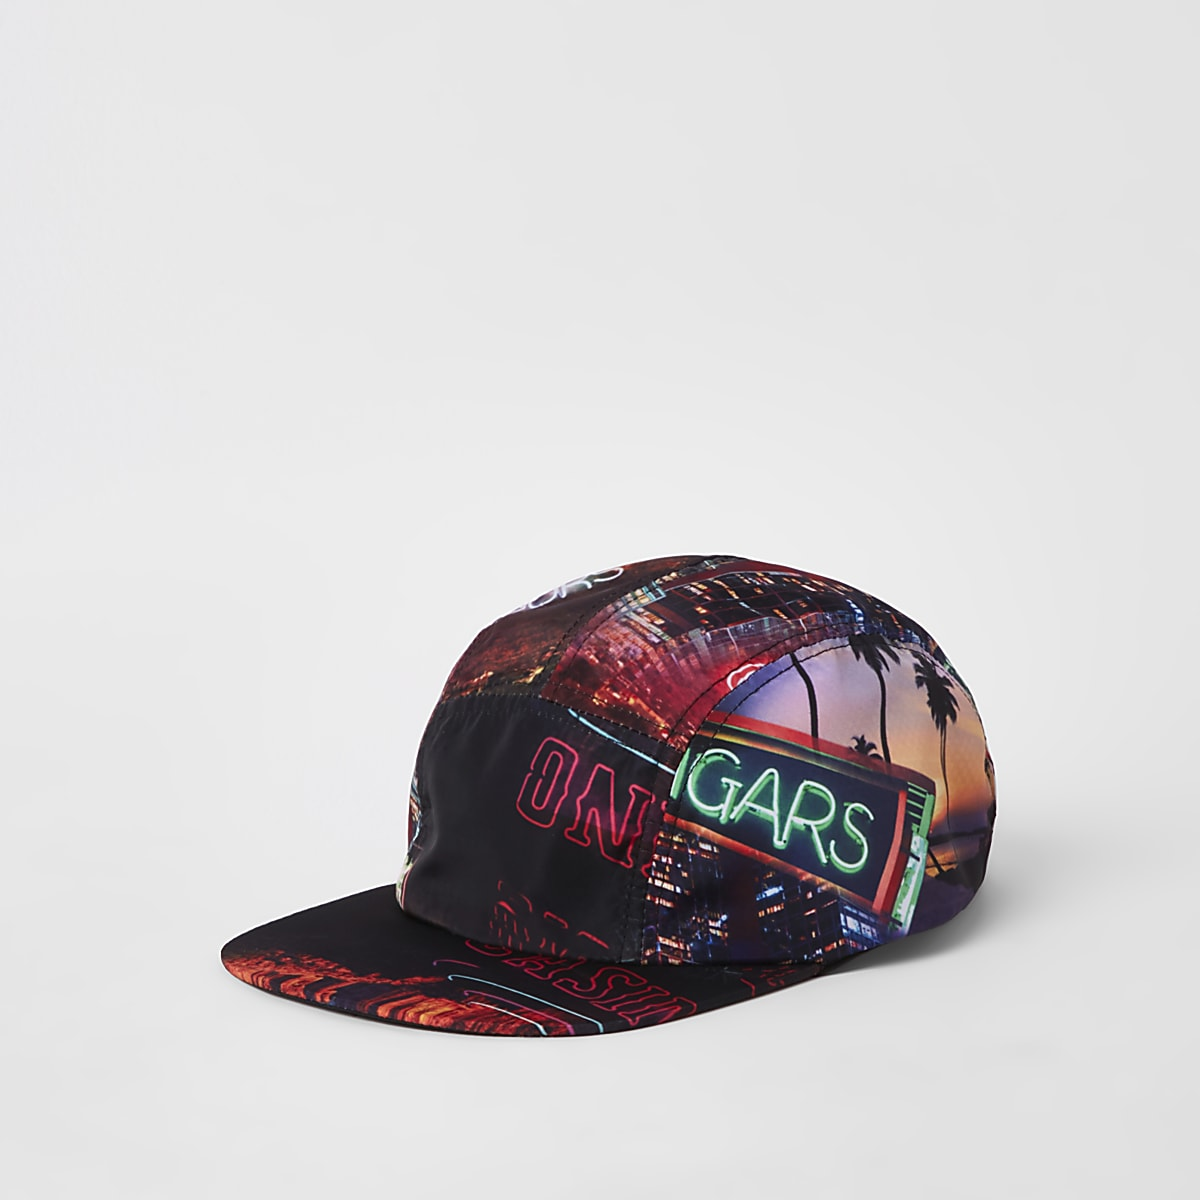 Black Vegas print five panel cap